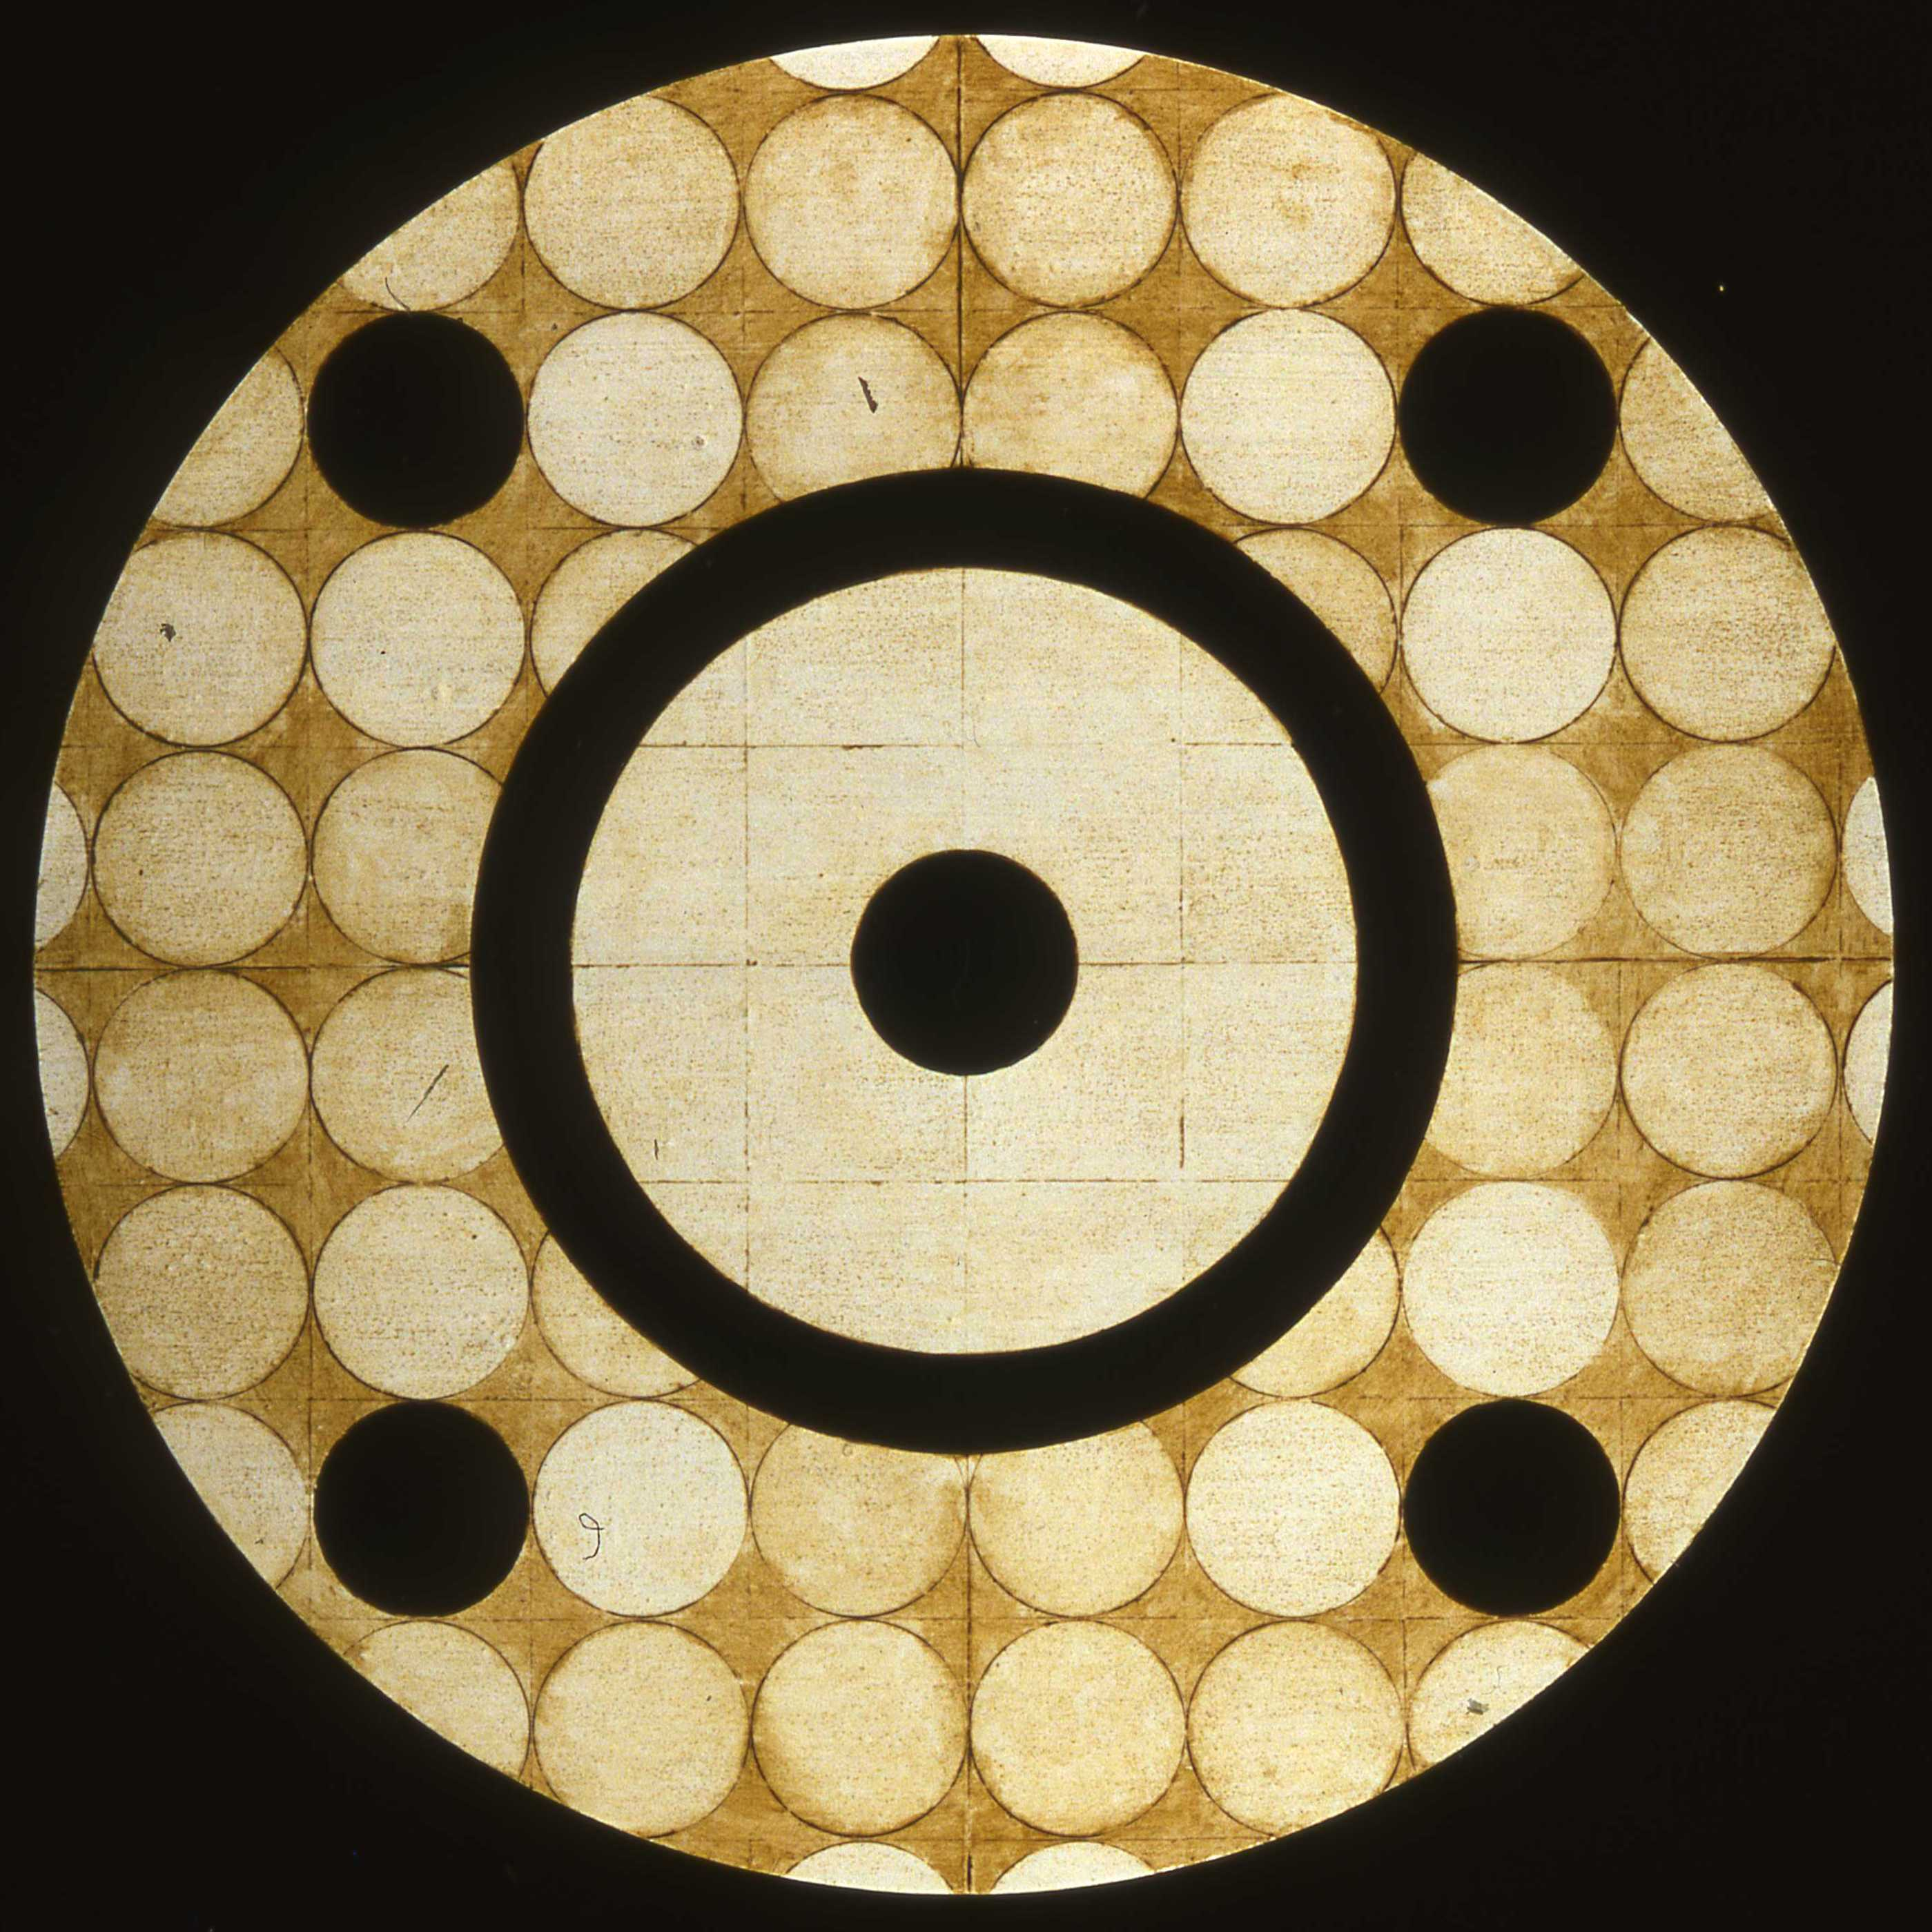 Marco Logsdon, Circle Painting #4, Oil,Tar,Beeswax on Hardboard, 34 in. diameter